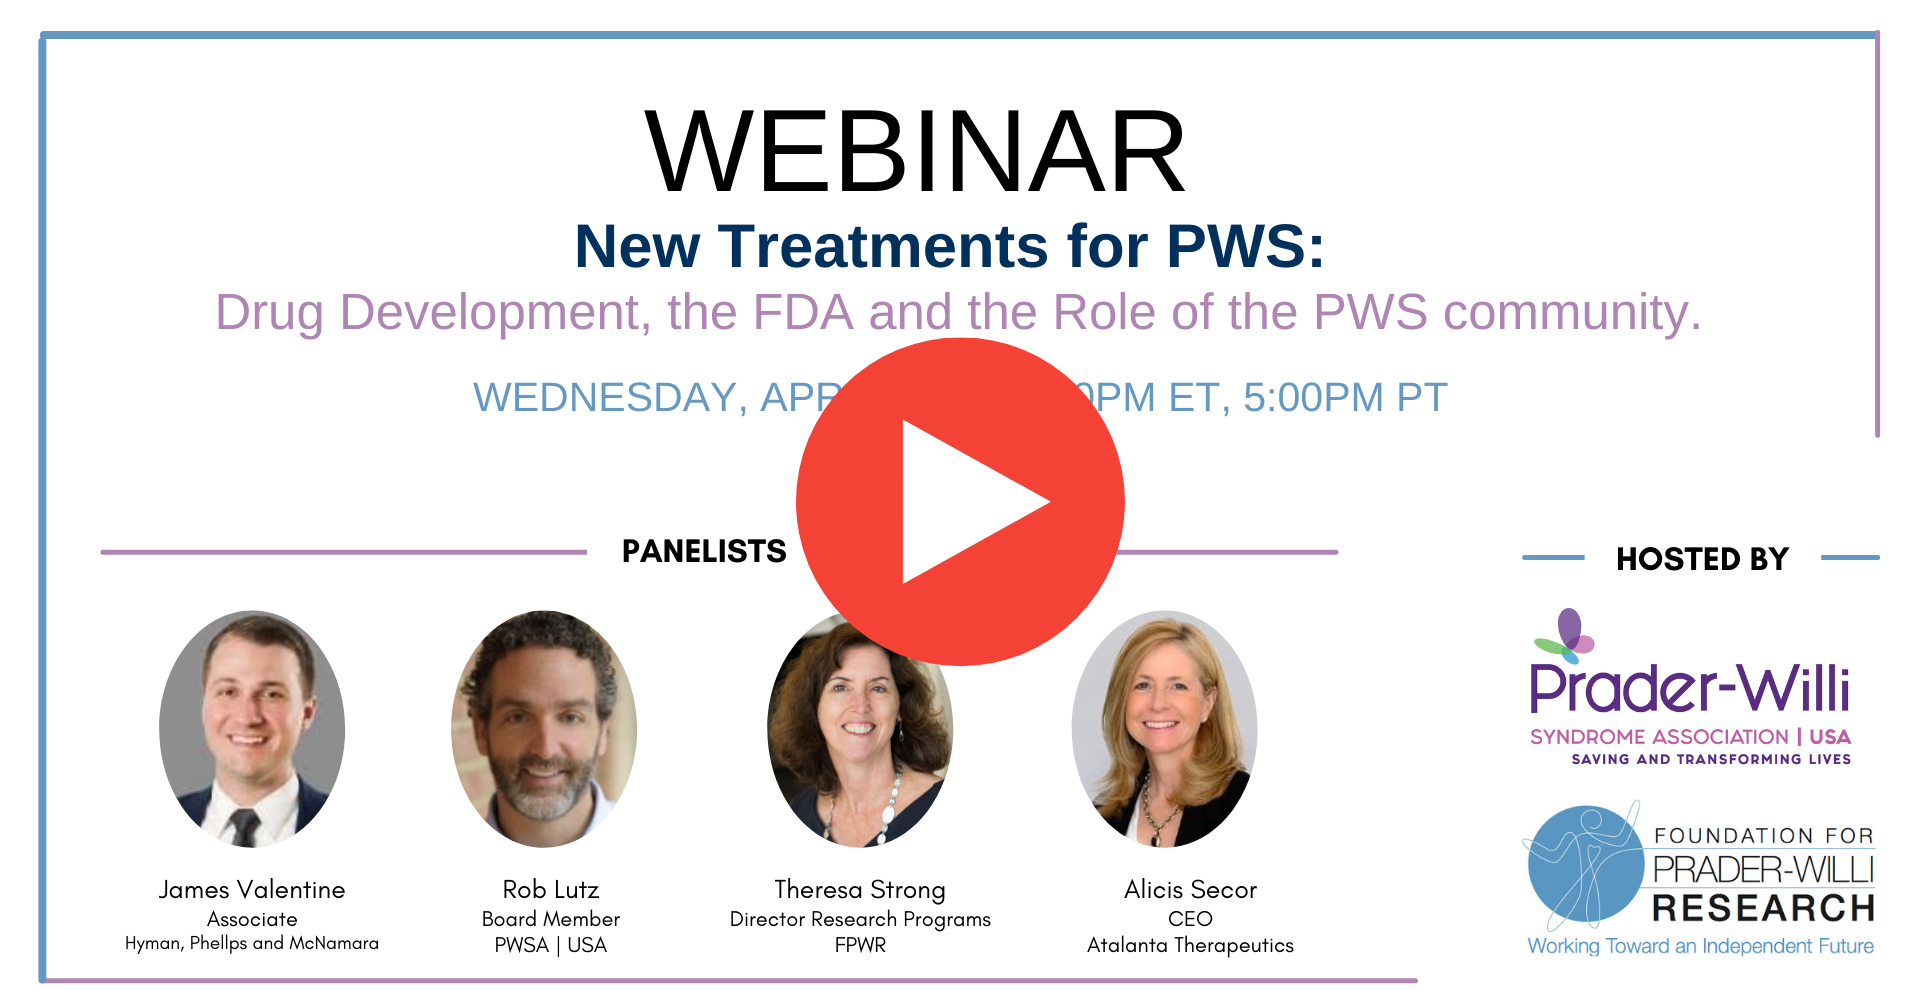 Drug Development, the FDA and the Role of the PWS Community [WEBINAR]